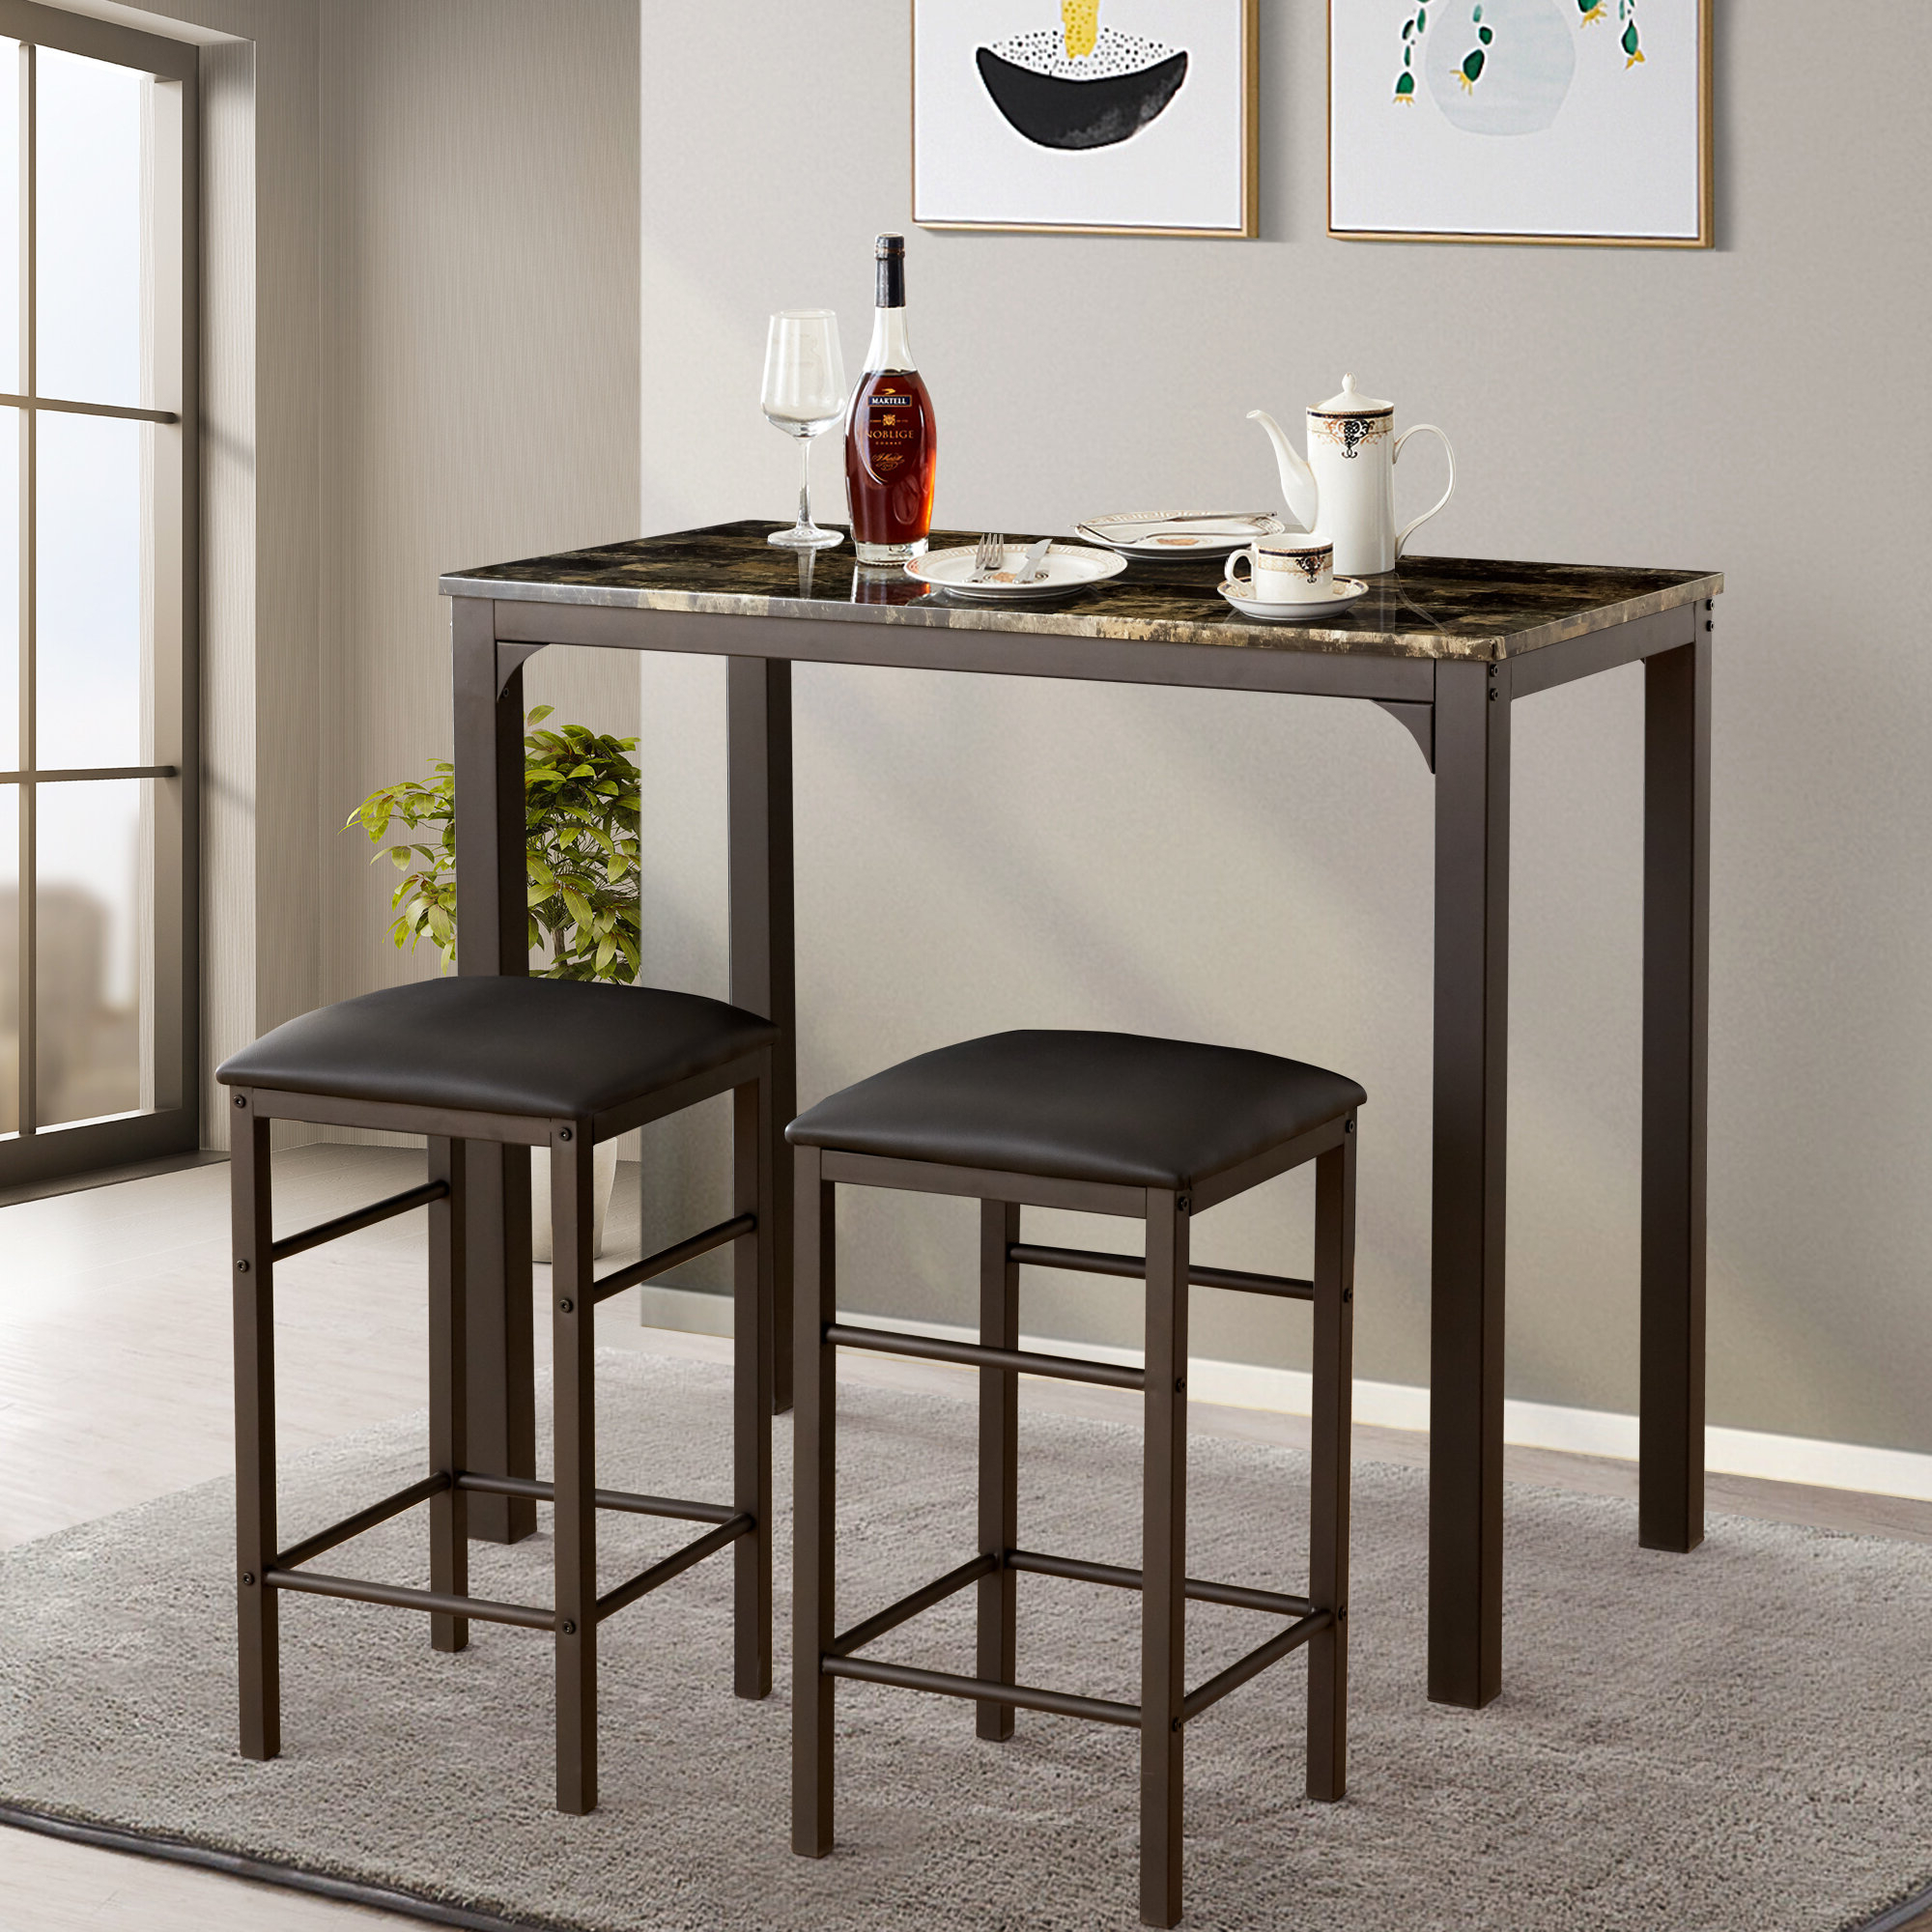 Tappahannock 3 Piece Counter Height Dining Set For Recent Lillard 3 Piece Breakfast Nook Dining Sets (View 9 of 20)